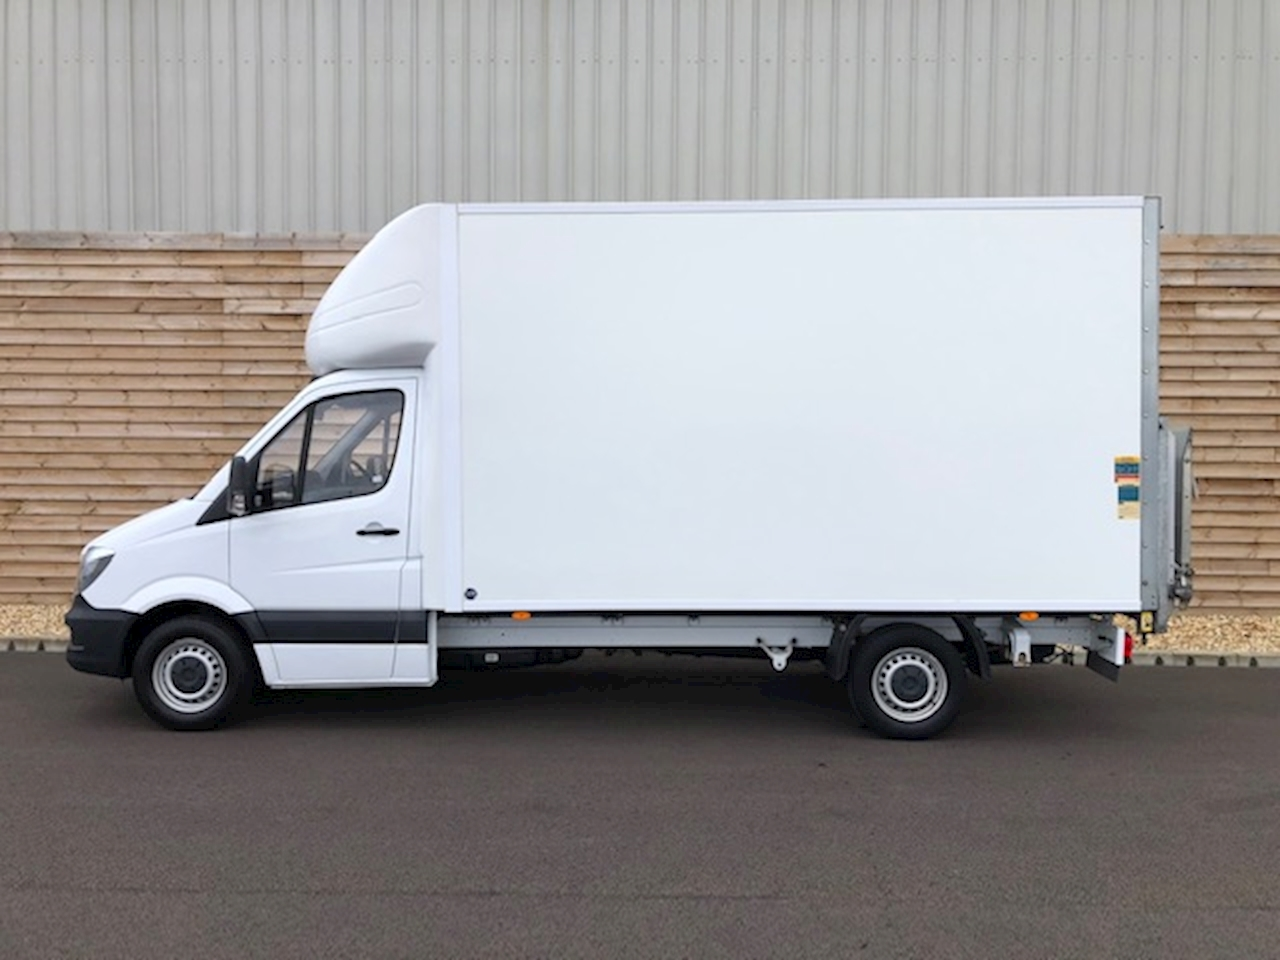 bb66ad65b4a831 Used 2016 Mercedes-Benz Sprinter 313 SPRINTER 313 CDI Luton Van 2.1 Manual  Diesel For Sale in Suffolk